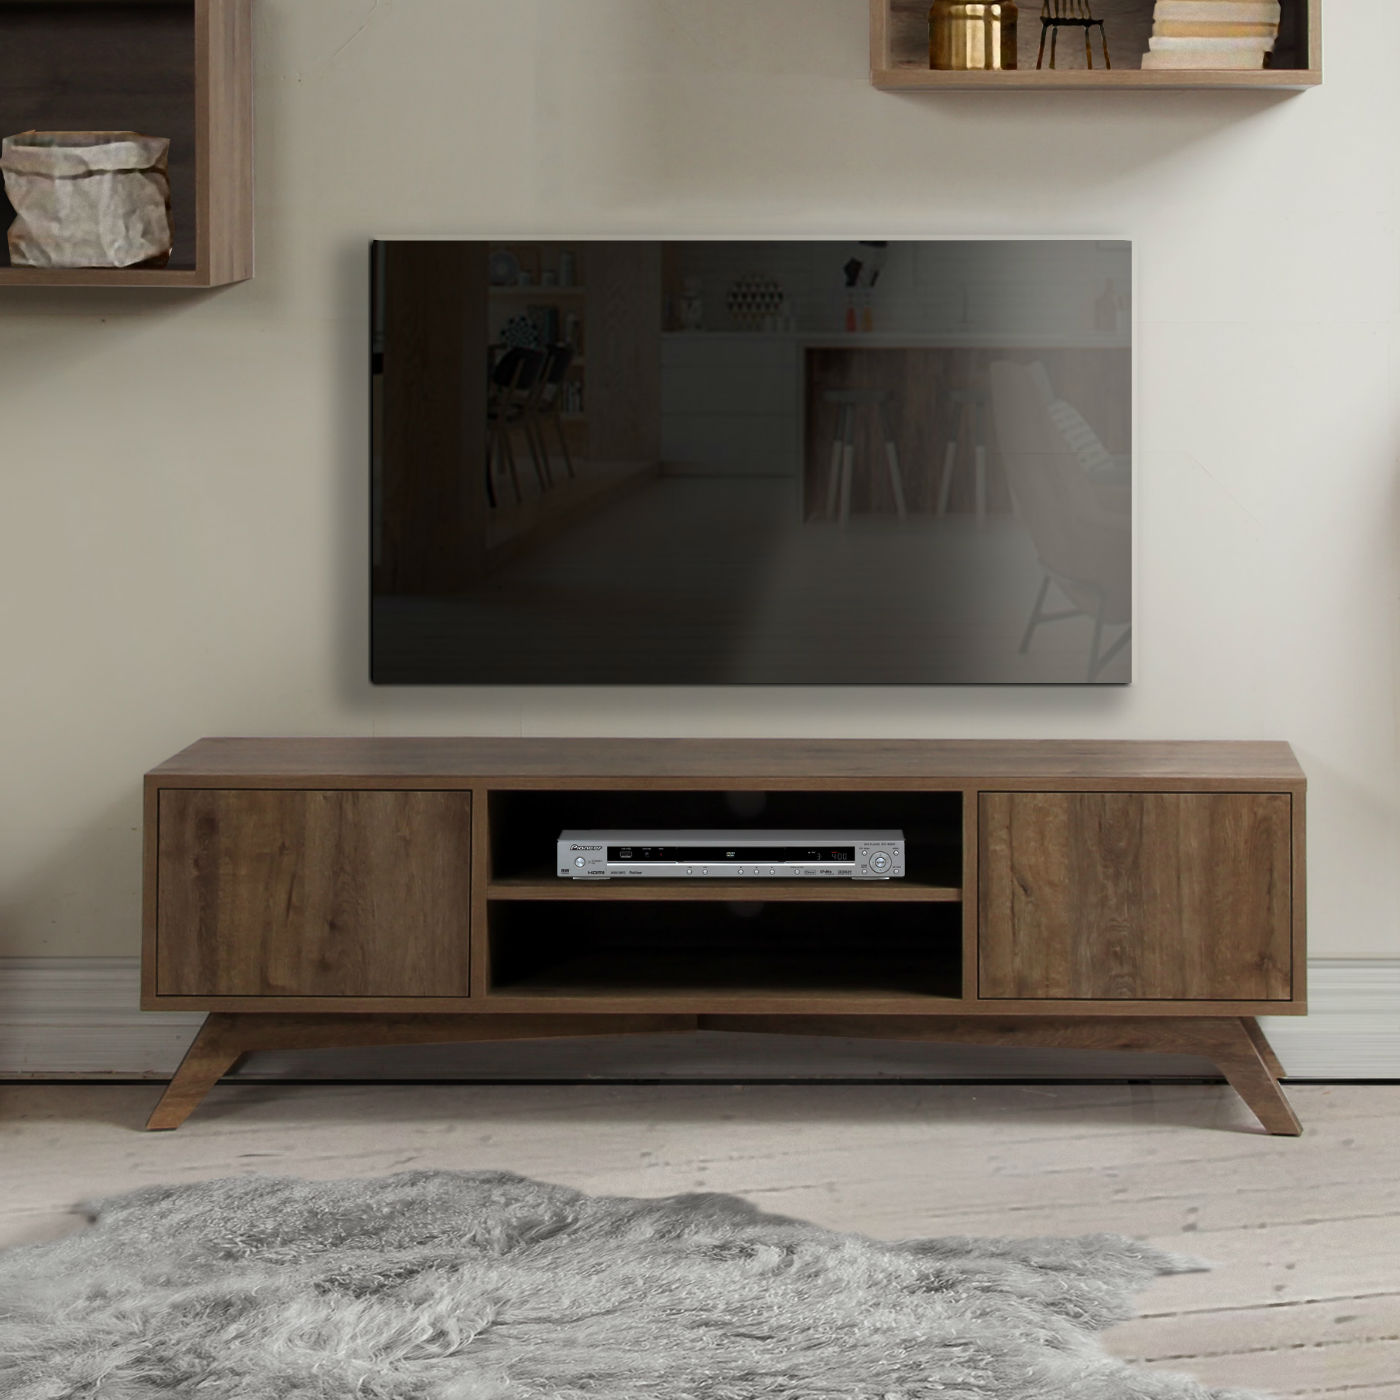 Meuble Design Scandinave Meuble Tv Design Scandinave Brin D 39ouest